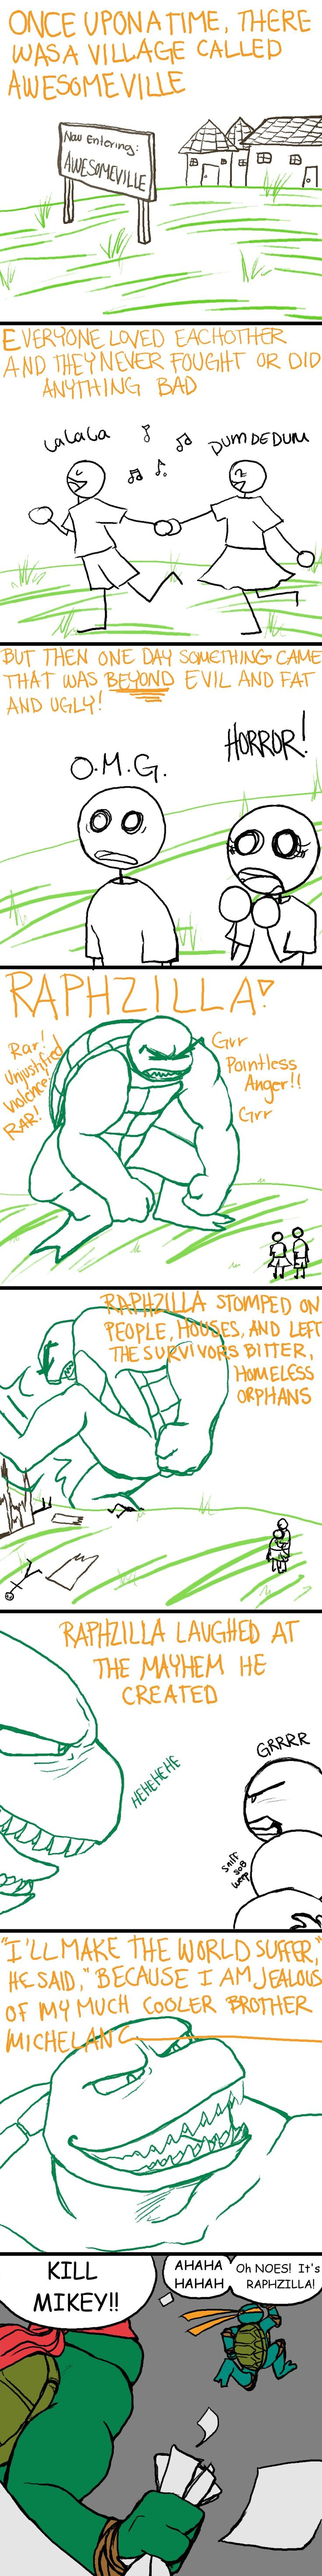 MIKEY DONT DO THAT RAPH ISNT LIKE THAT! Shame on you Mikey shame